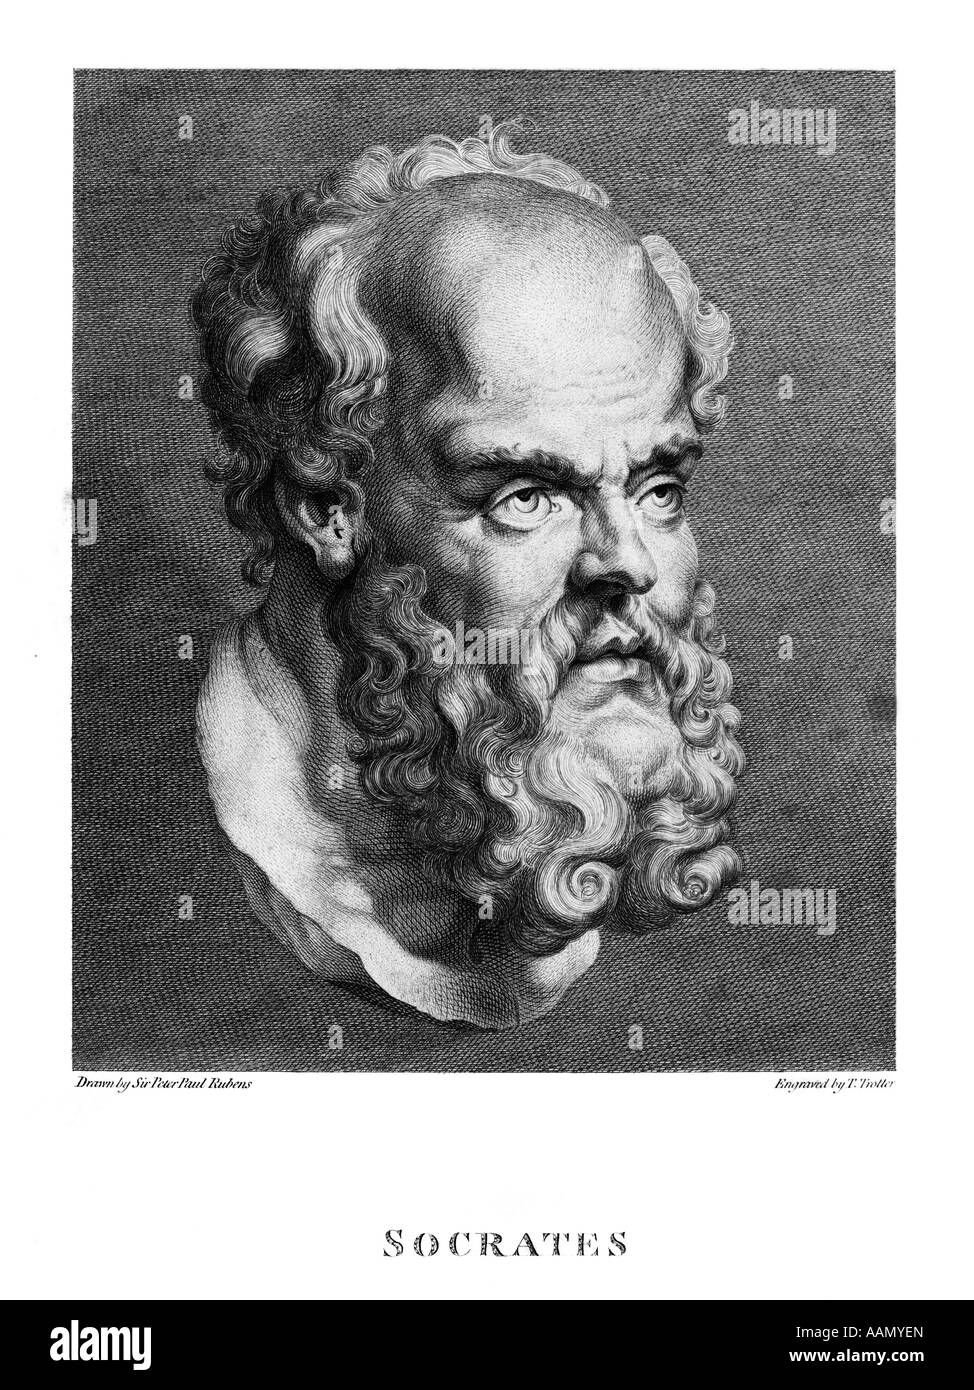 DRAWING OF A BUST OF SOCRATES GREEK PHILOSOPHER TEACHER INITIATED QUESTION & ANSWER METHOD OF SELF KNOWLEDGE - Stock Image